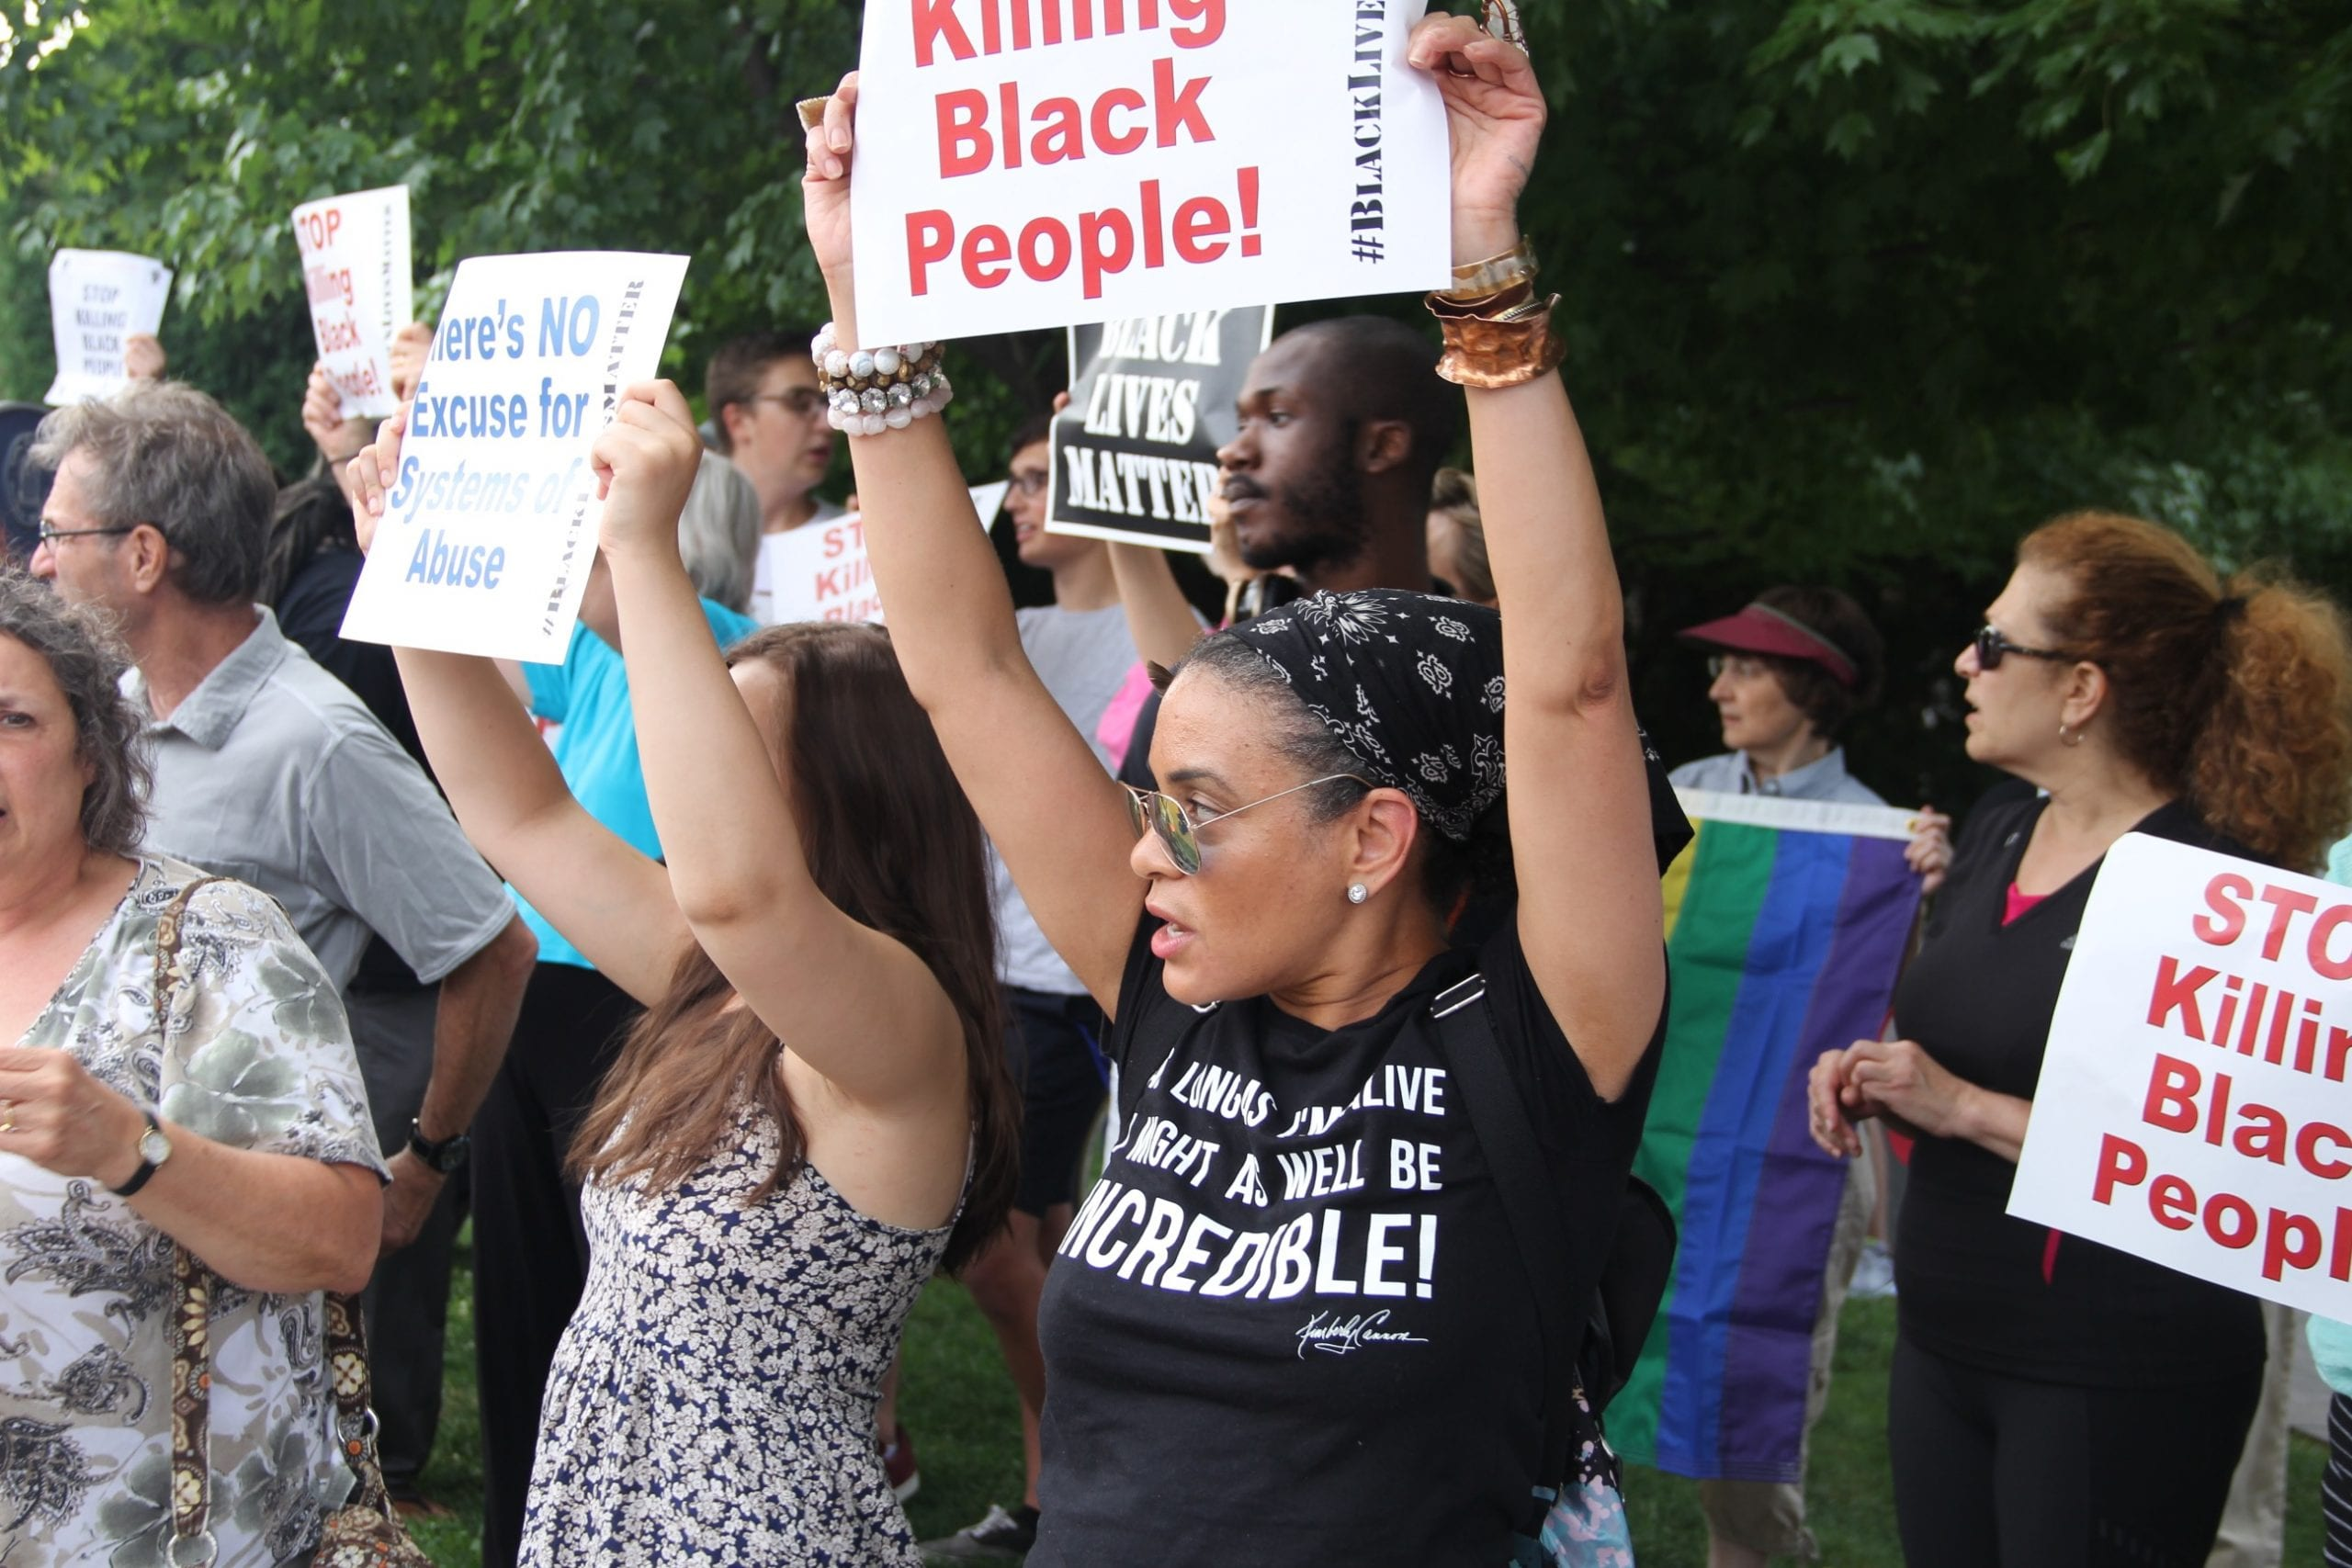 Peaceful participants at a Black Lives Matter rally in West Hartford. Photo credit: Amy B. Melvin